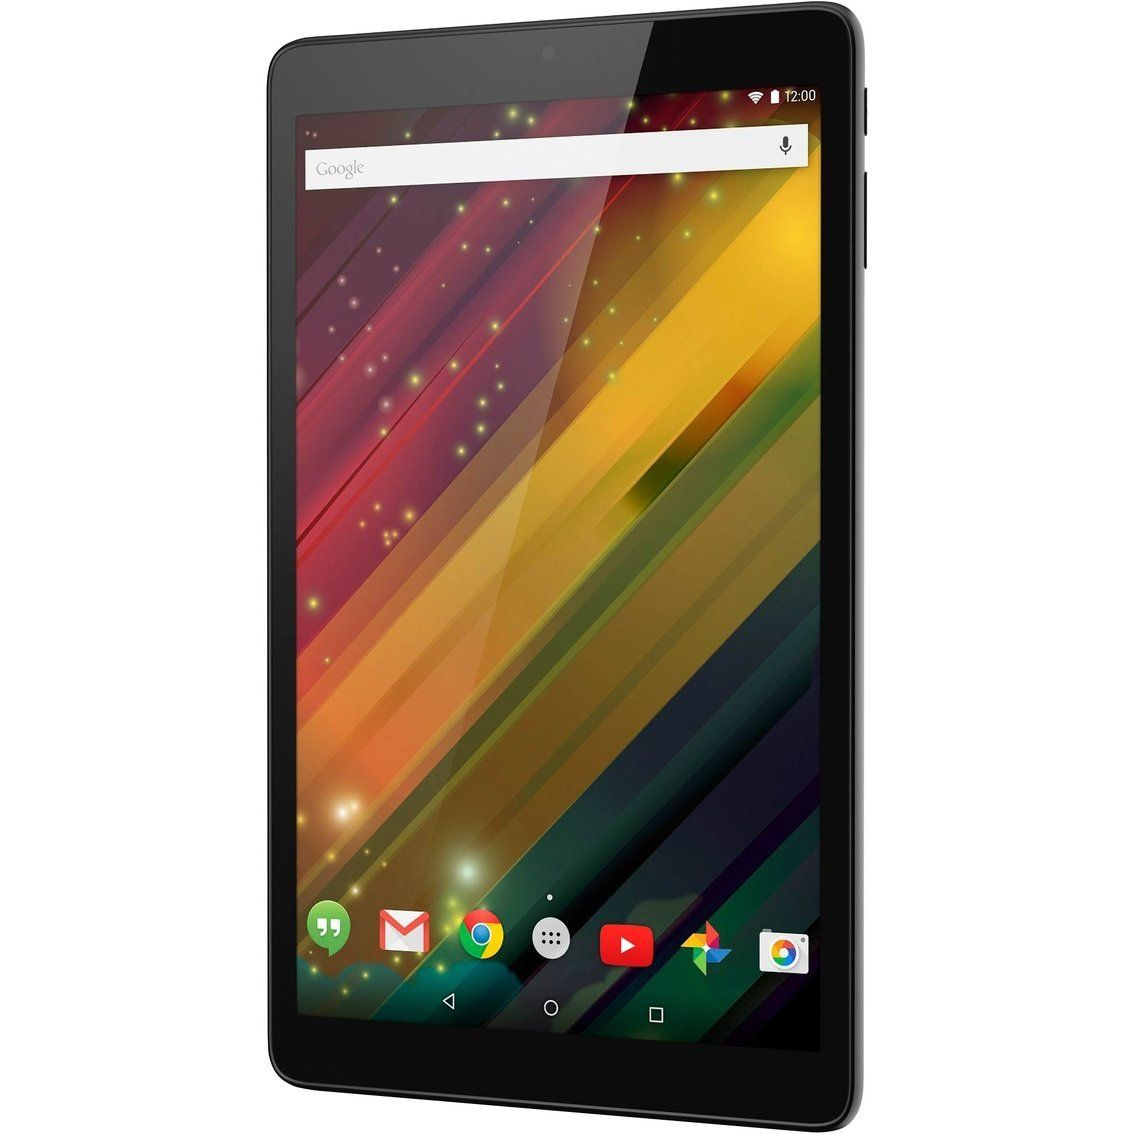 HP 10 G2 2301 10.1″ Android 5.0 Lollipop Tablet 1GB